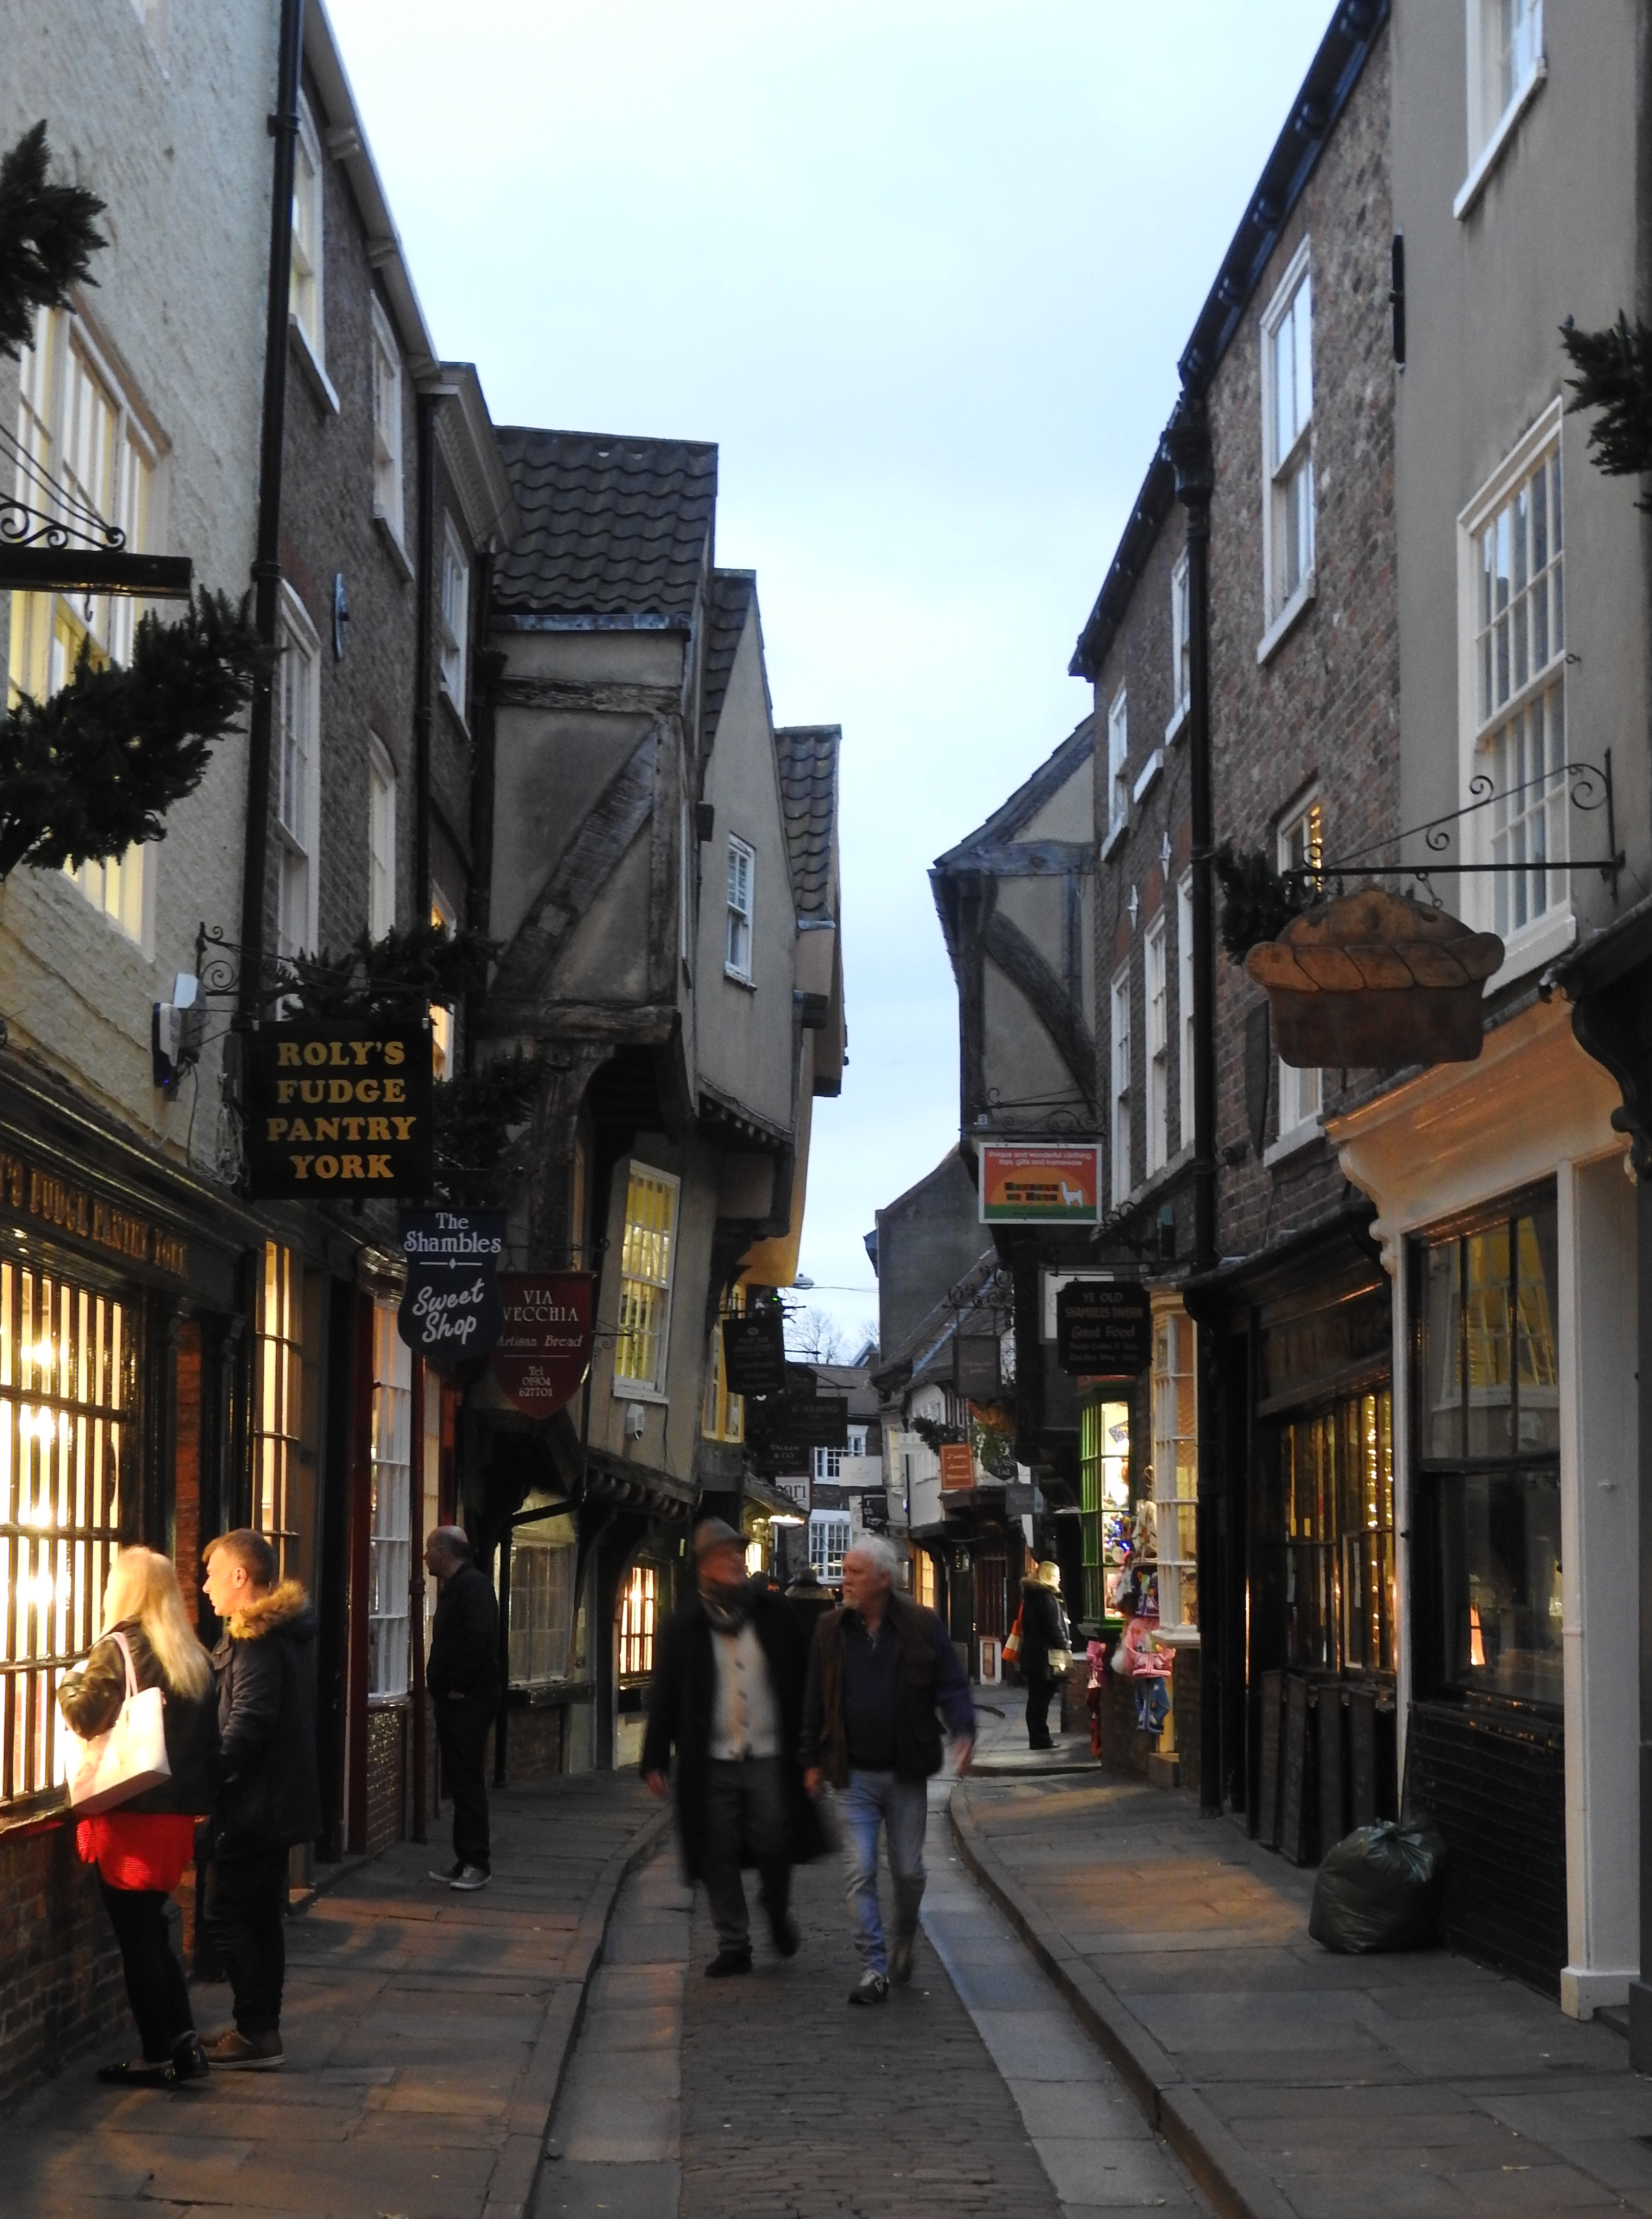 Butchers, Benches, and Boggarts: The York Shambles